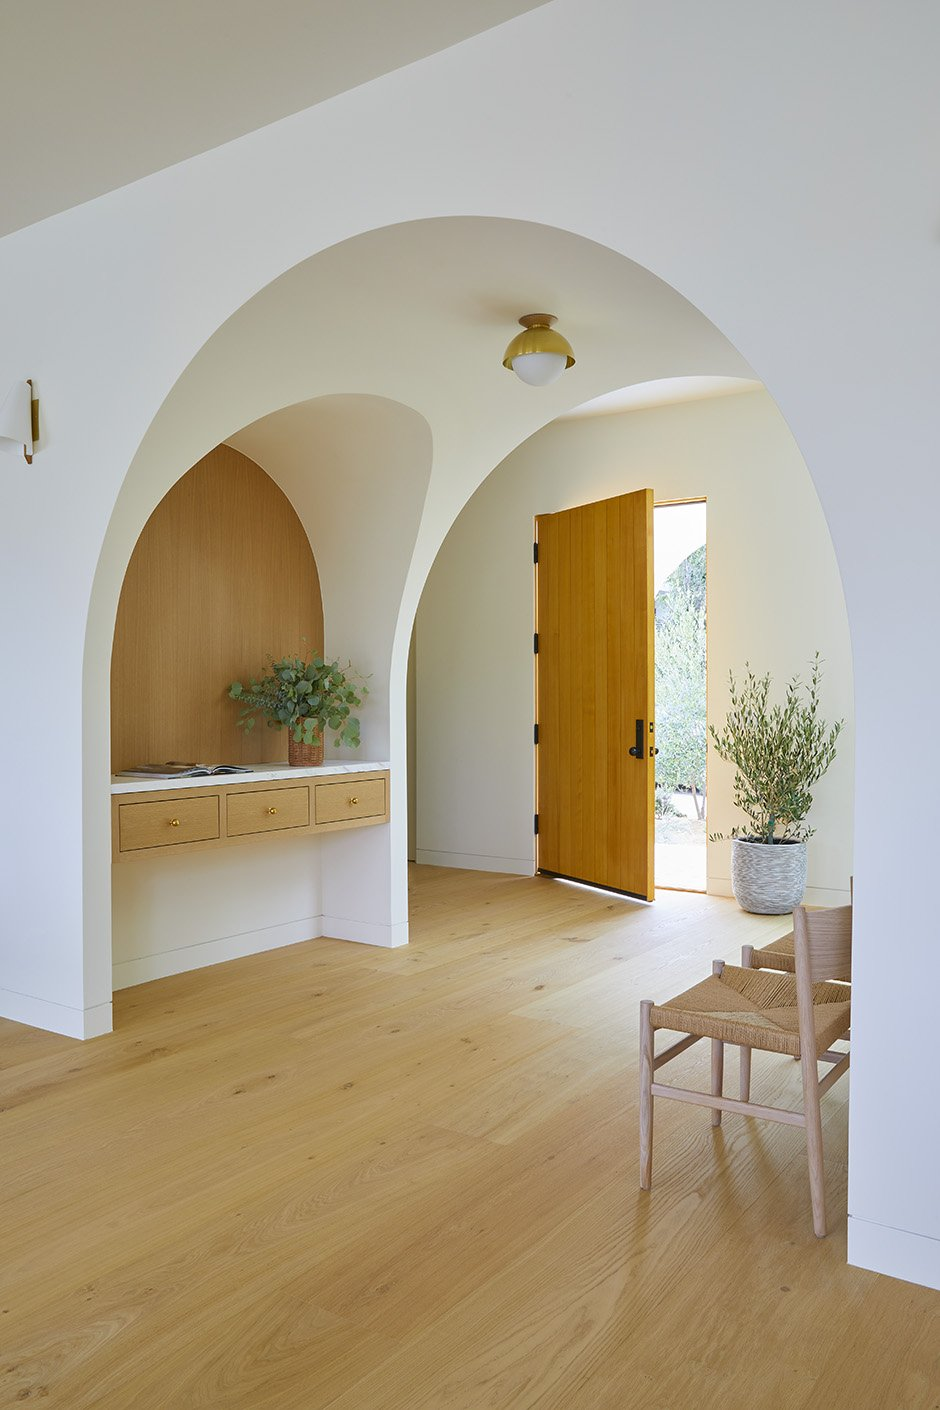 http://cdn.home-designing.com/wp-content/uploads/2021/04/wide-set-rounded-arch-doorway.png